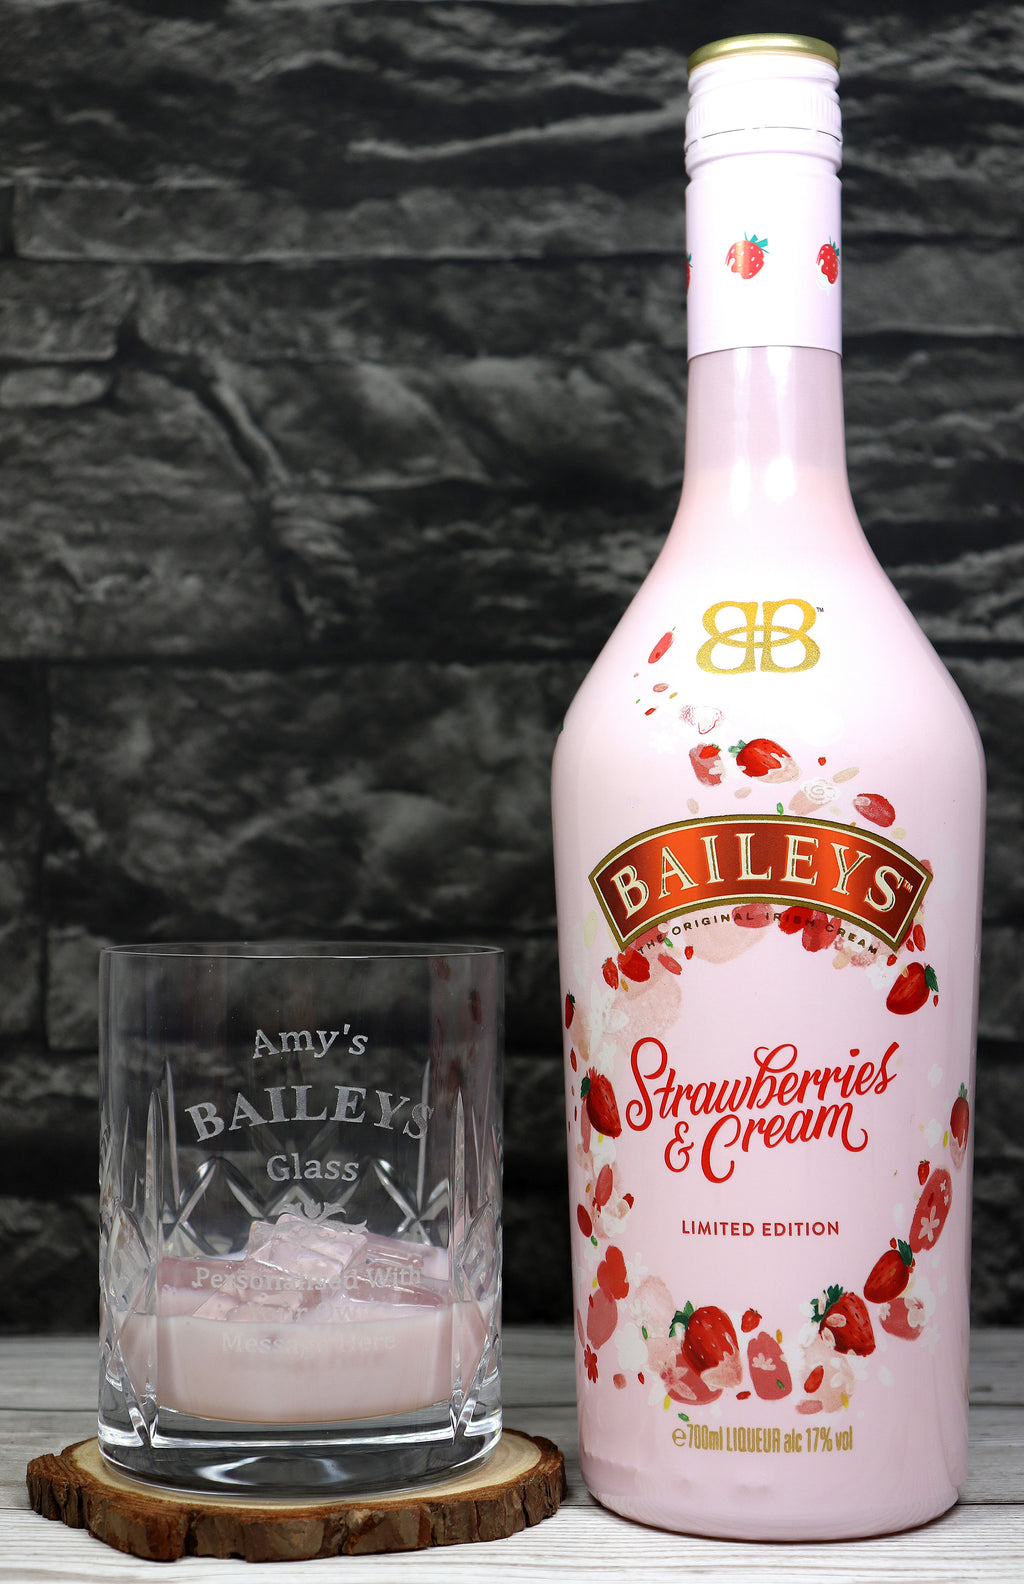 Personalised Crystal Glass Tumbler & 70cl Baileys Strawberries & Cream - Baileys Design